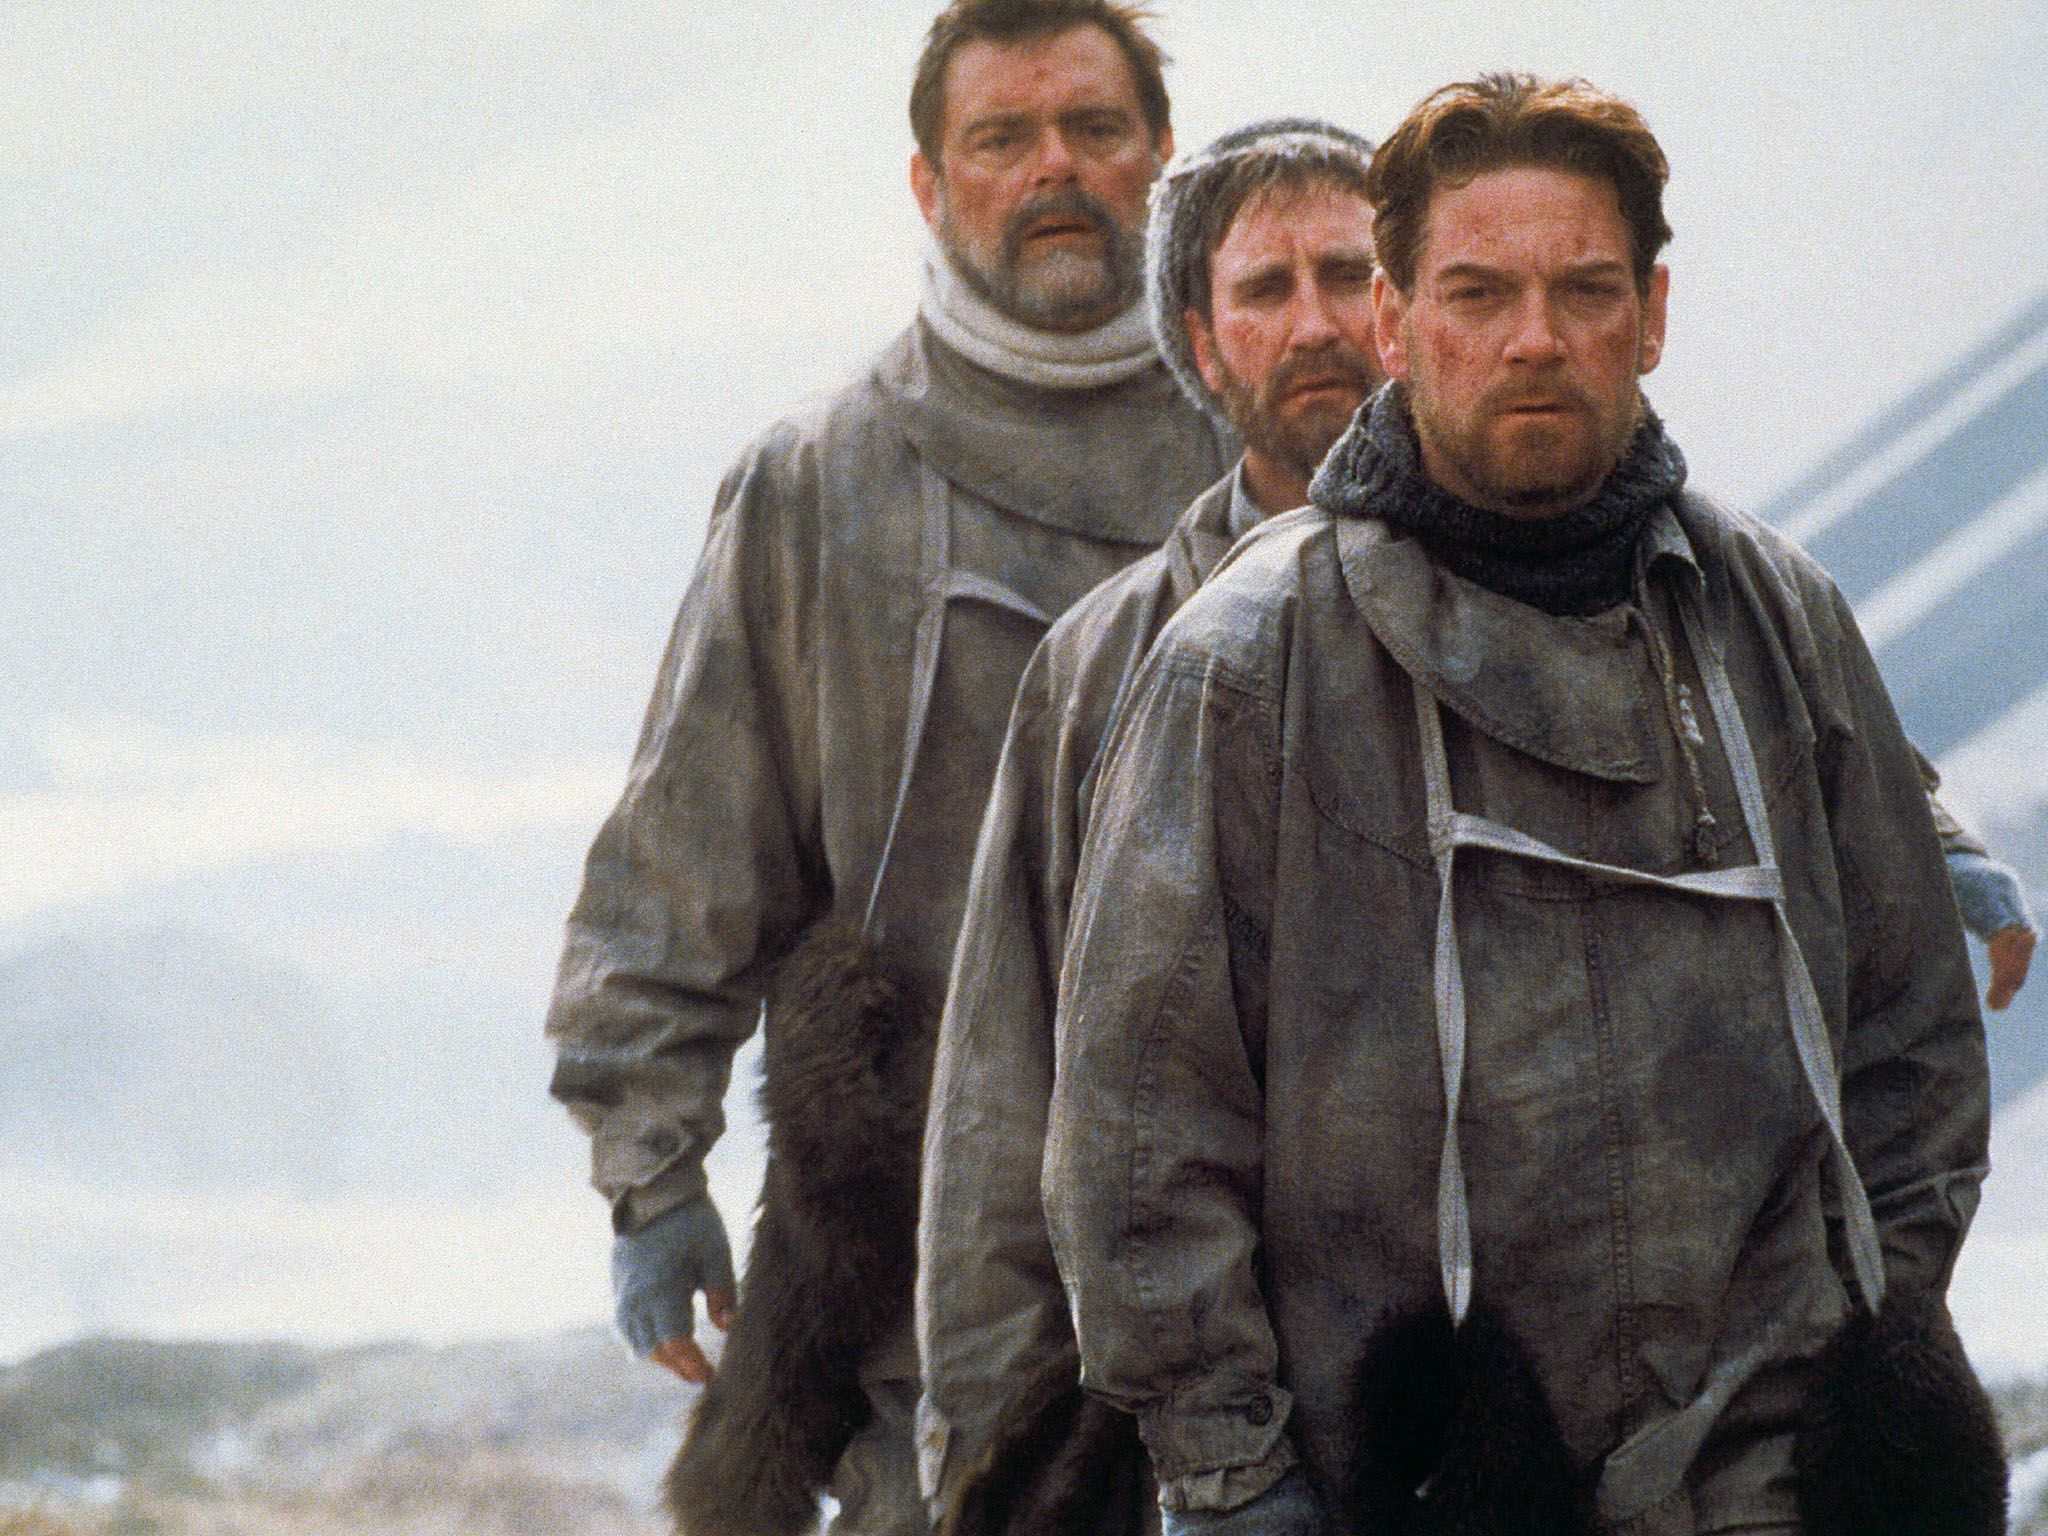 Kenneth Branagh stars as Sir Ernest Shackleton in this epic two-part drama about the legendary... [Photo of the day - دسامبر 2015]